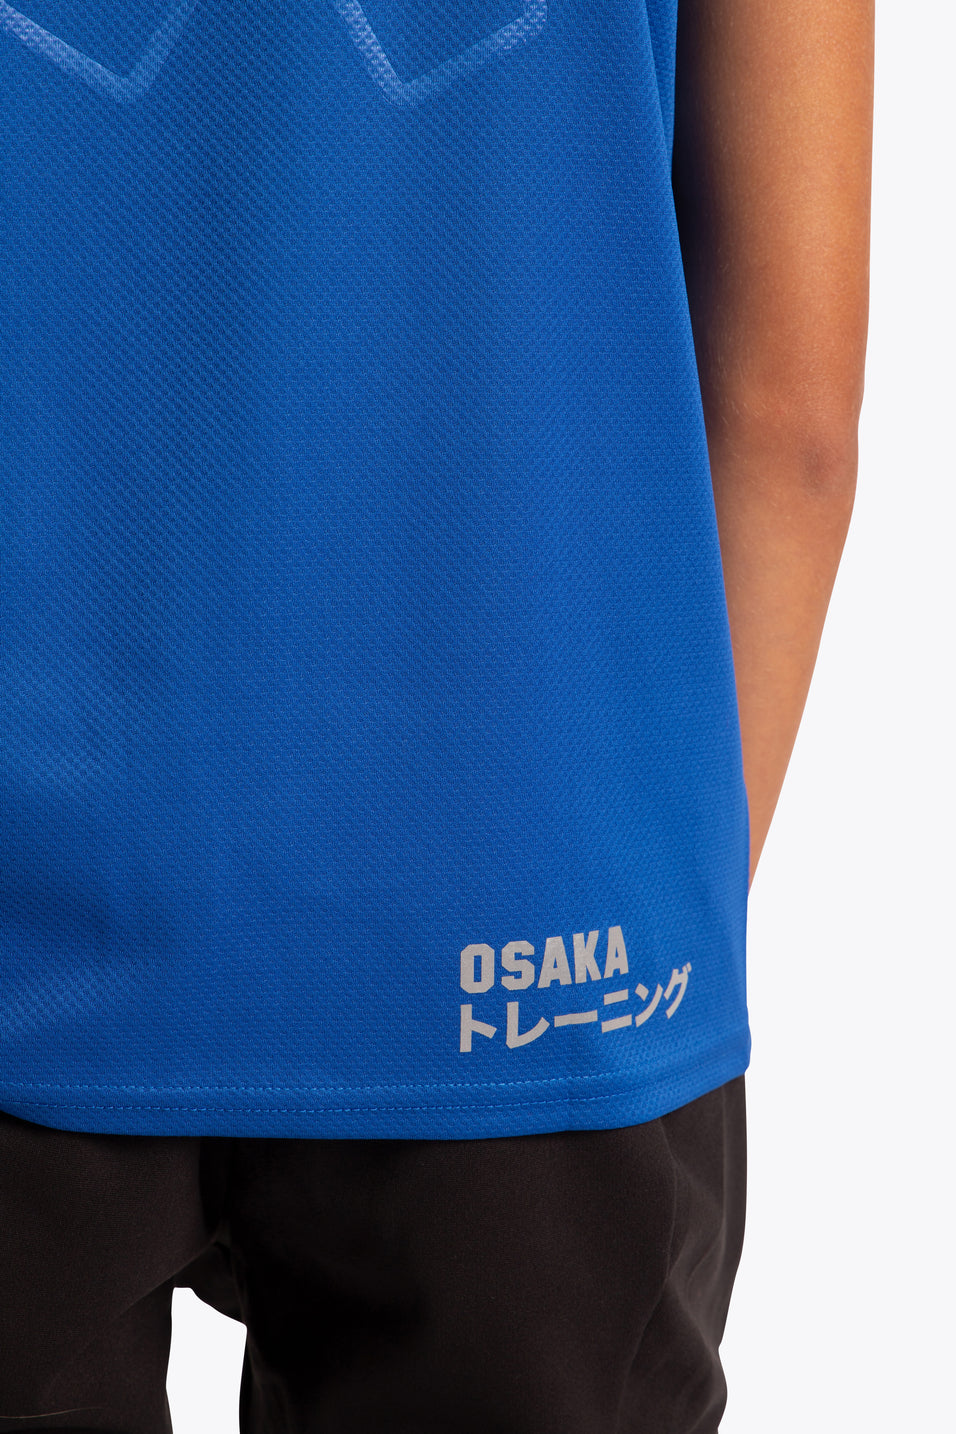 osaka training tee kids blue